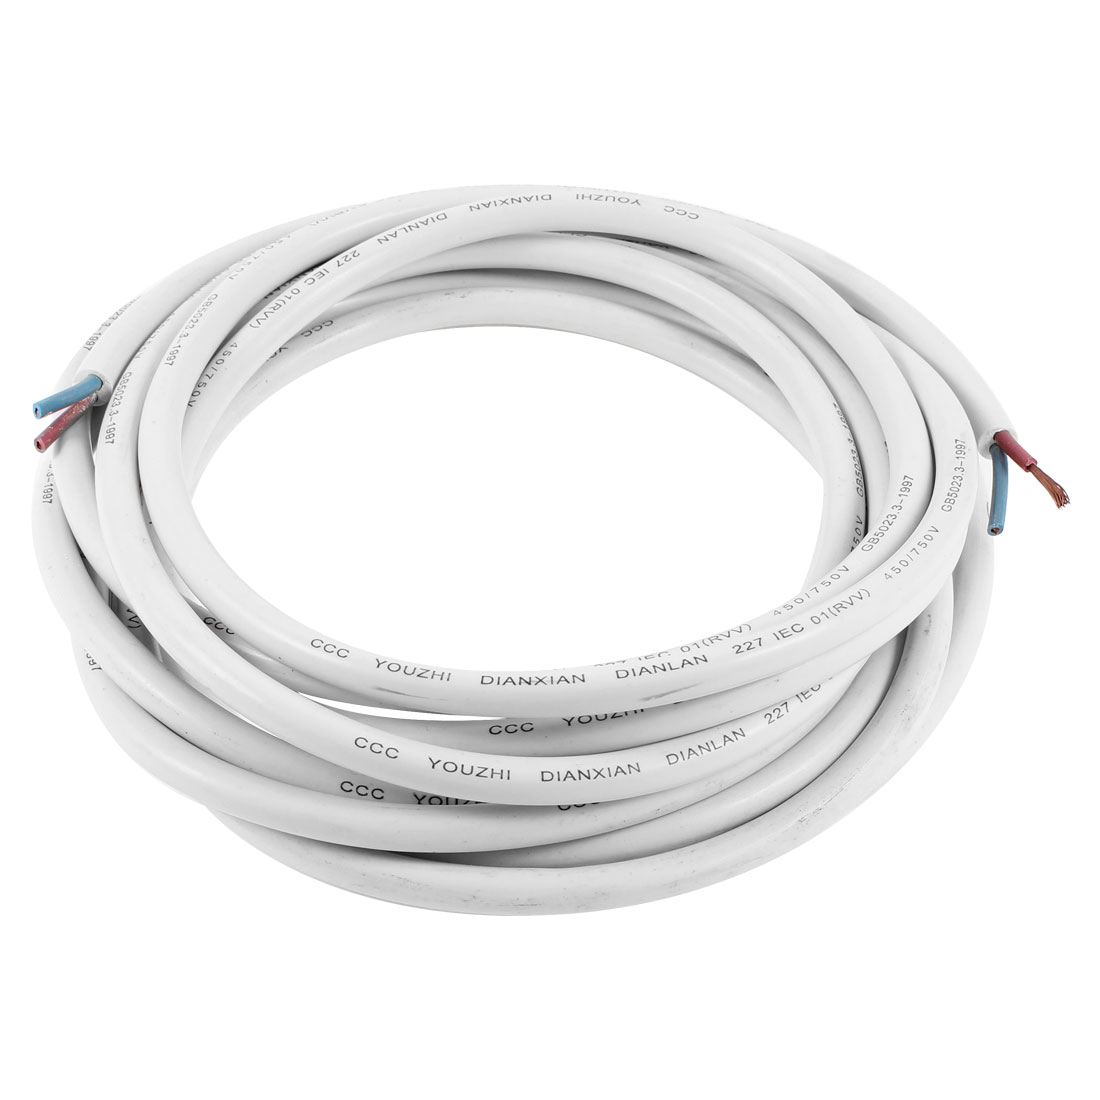 15/2 AWG Wire Copper Core Flexible PVC Insulated RVV Cable Cord 16.4 Feet White